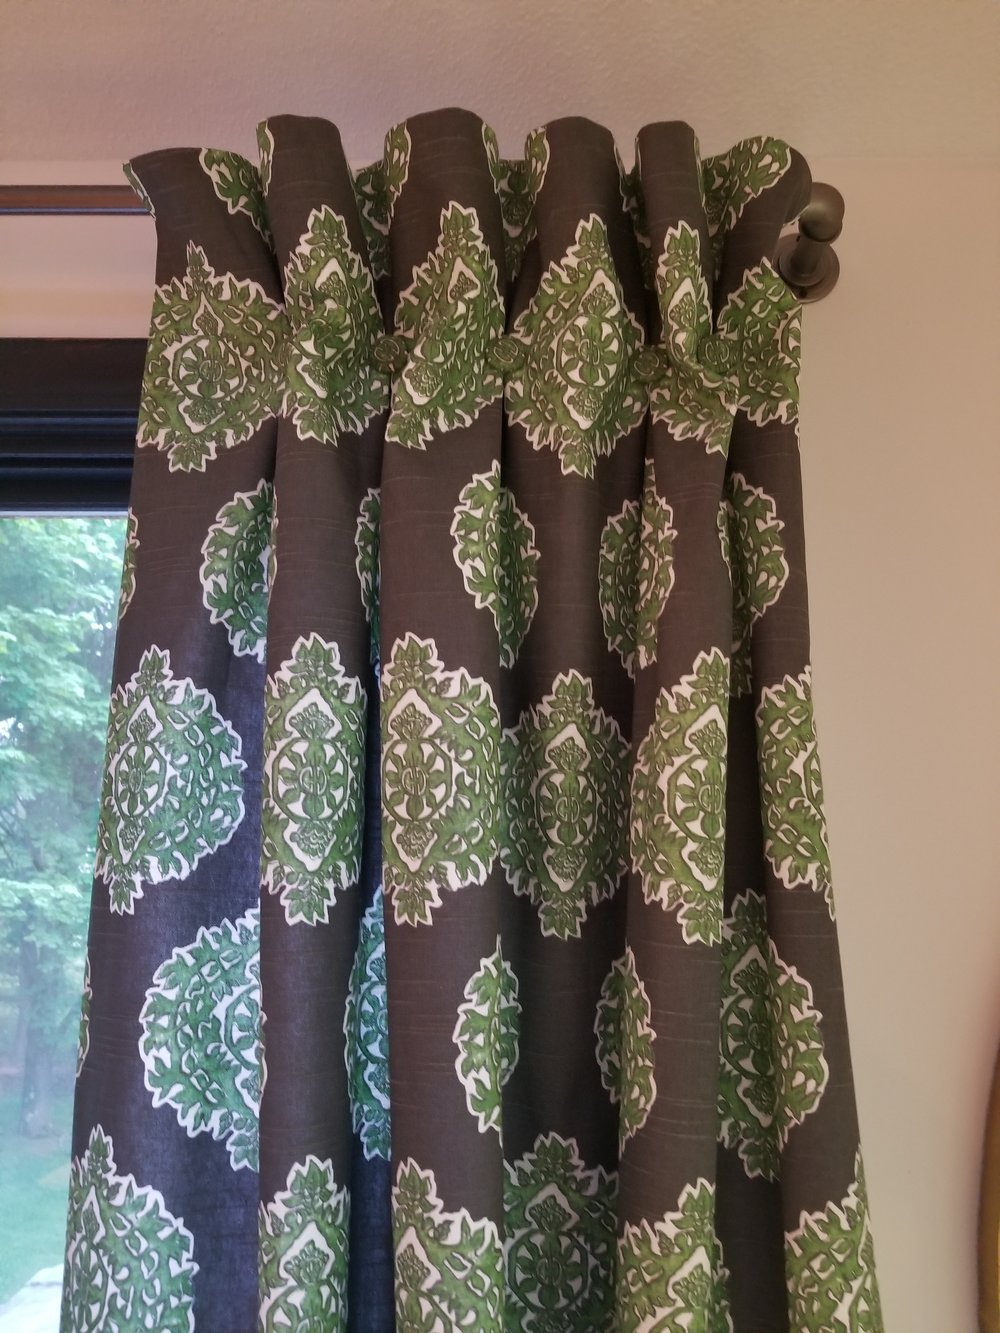 The curtain panels, turned out wonderfully with the help of my seamstress.